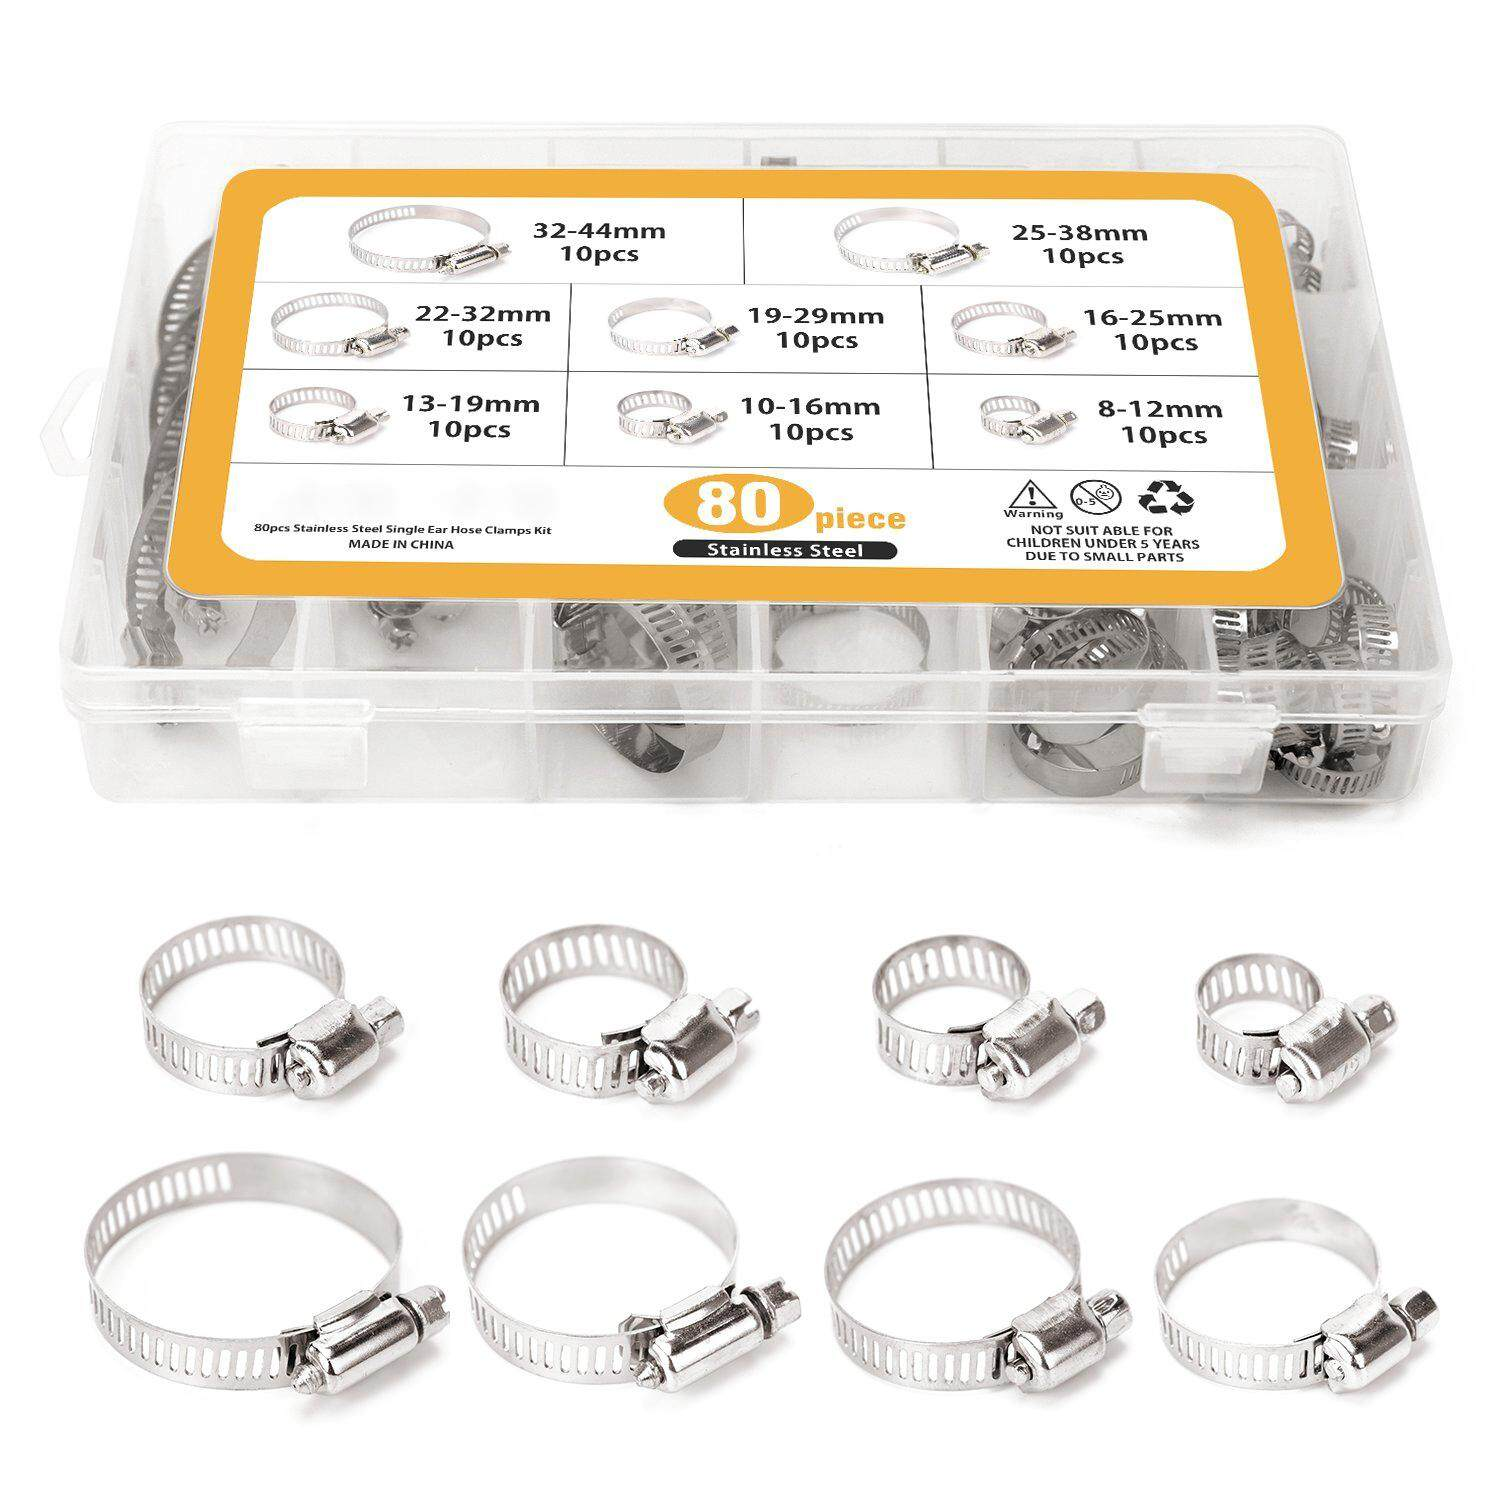 80 Pieces Adjustable 5/16-1-23/32 inch Range Worm Gear Hose Clamps Assortment Kit, 8 Size,One Dual-purpose Screwdriver Included